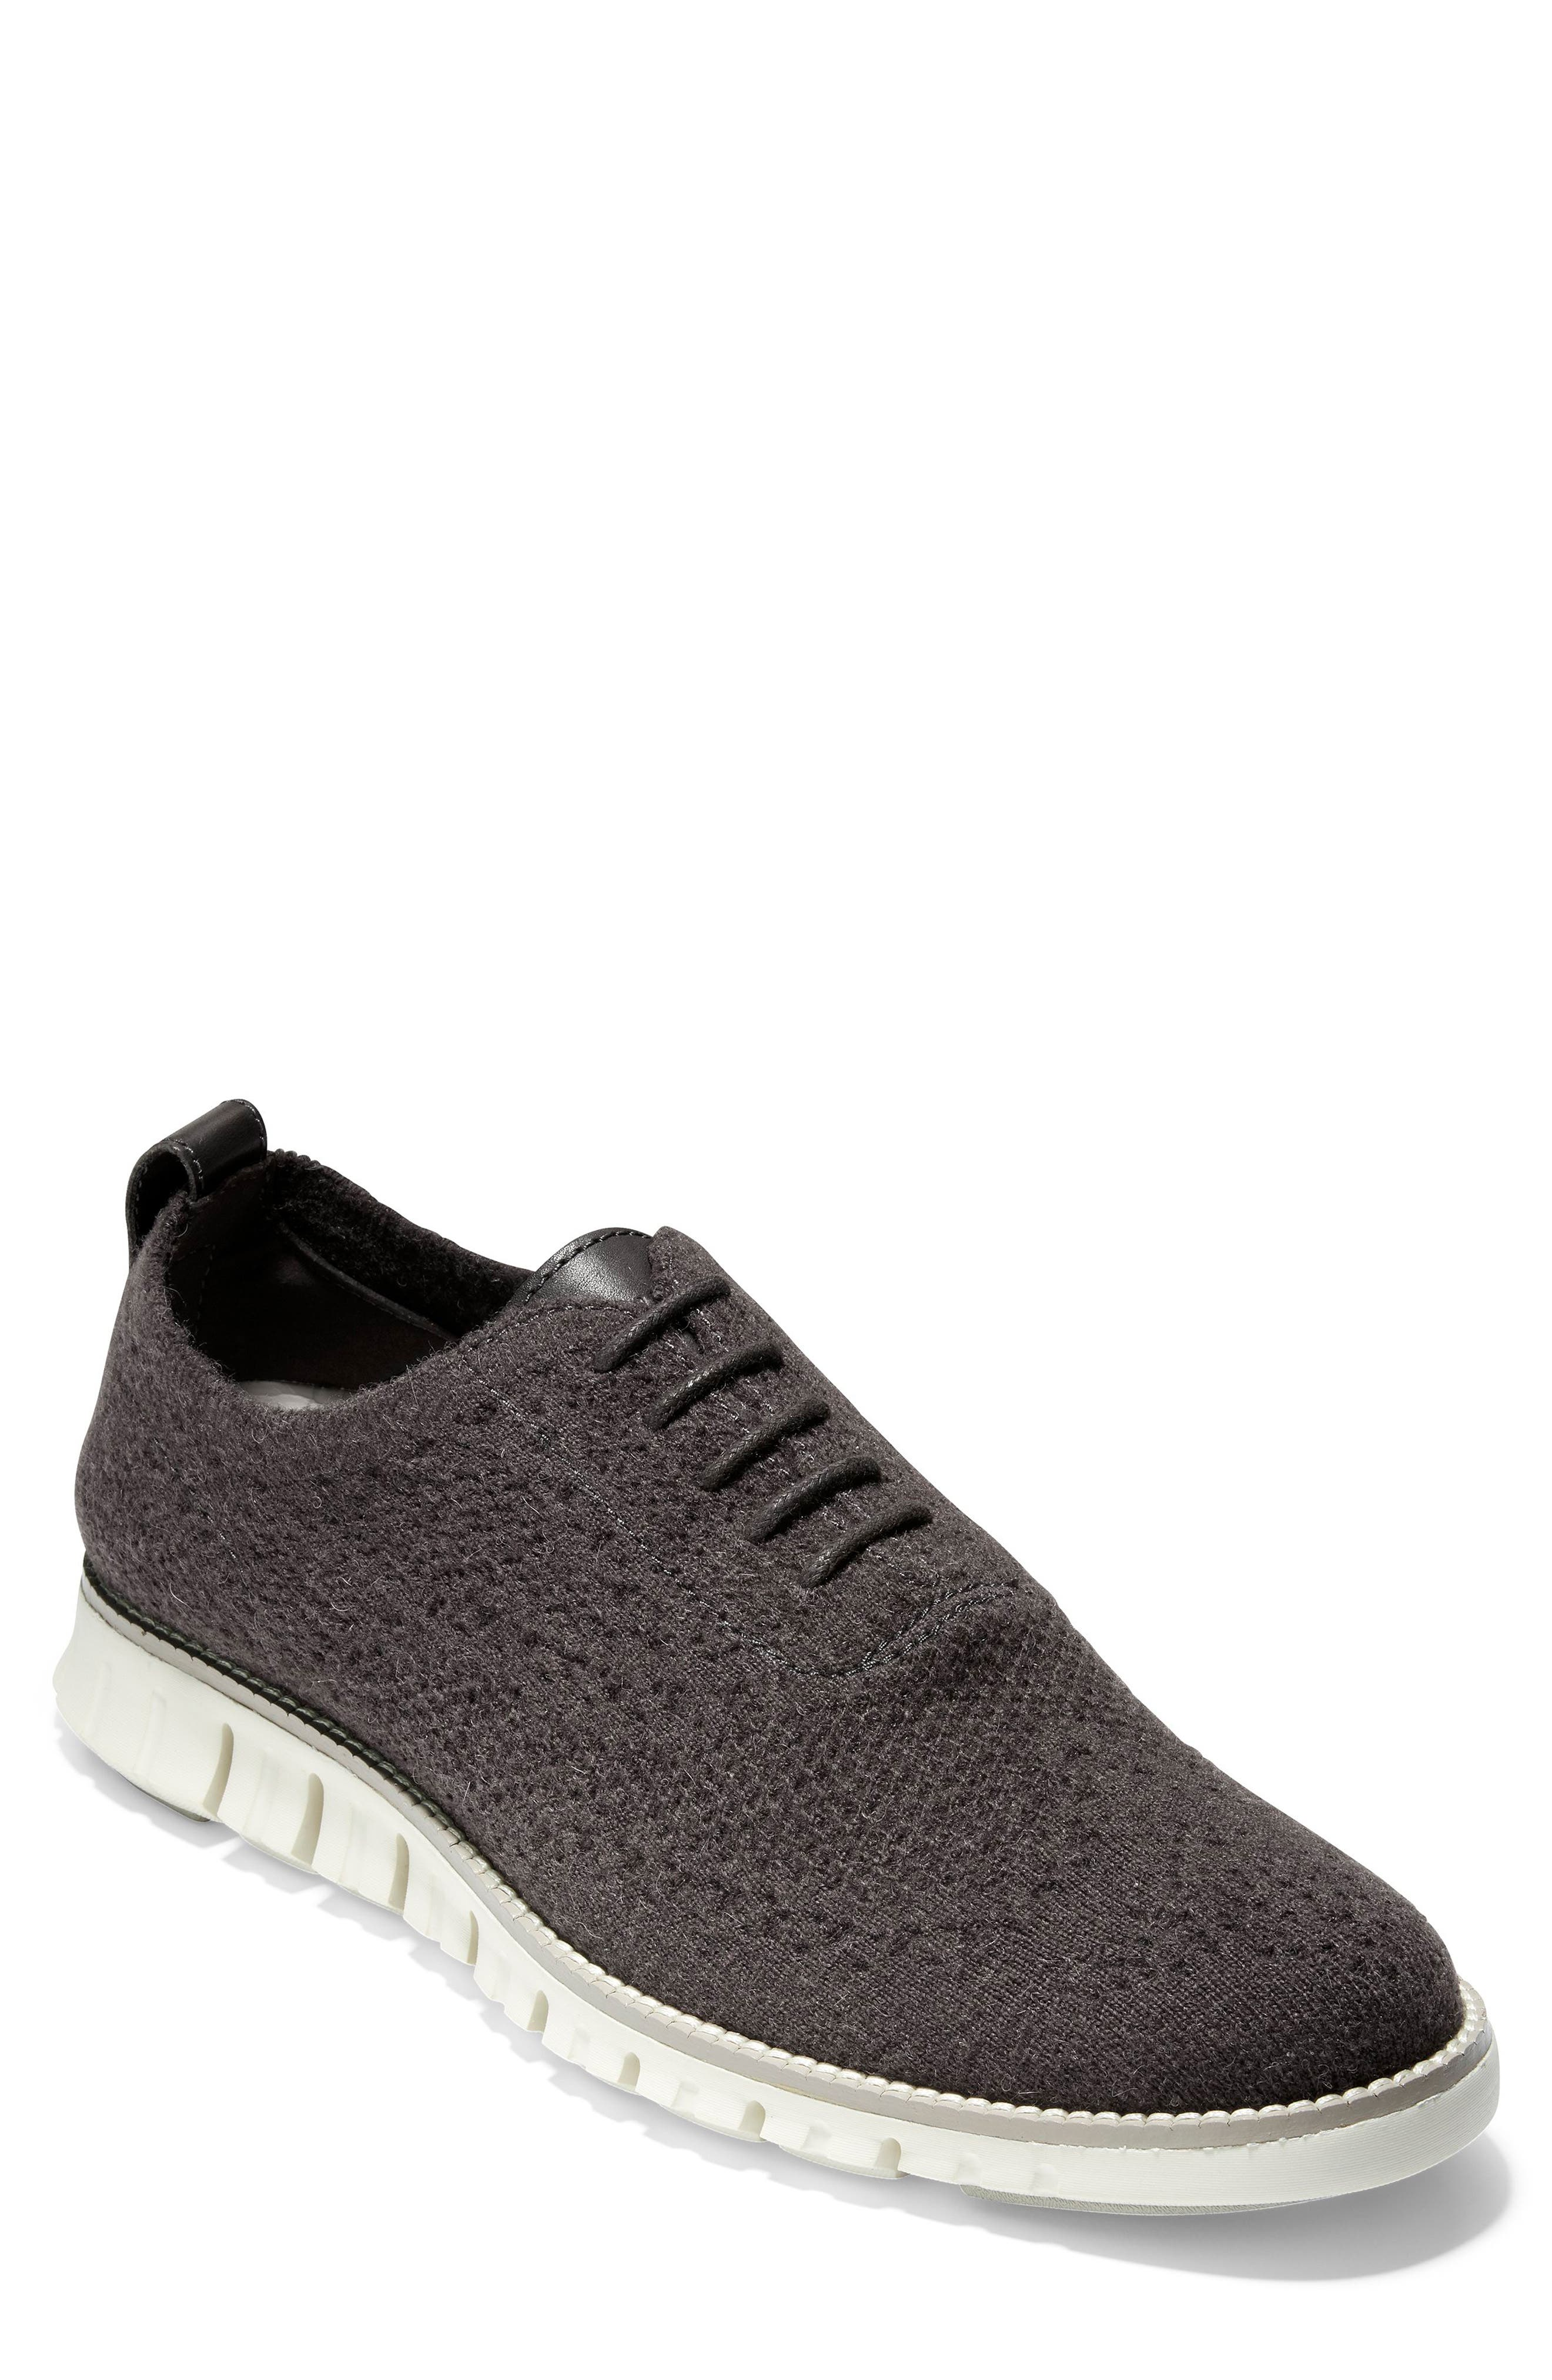 ZeroGrand Stitchlite<sup>™</sup> Water Resistant Wool Oxford,                             Main thumbnail 1, color,                             DARK ROAST WOOL KNIT/ IVORY